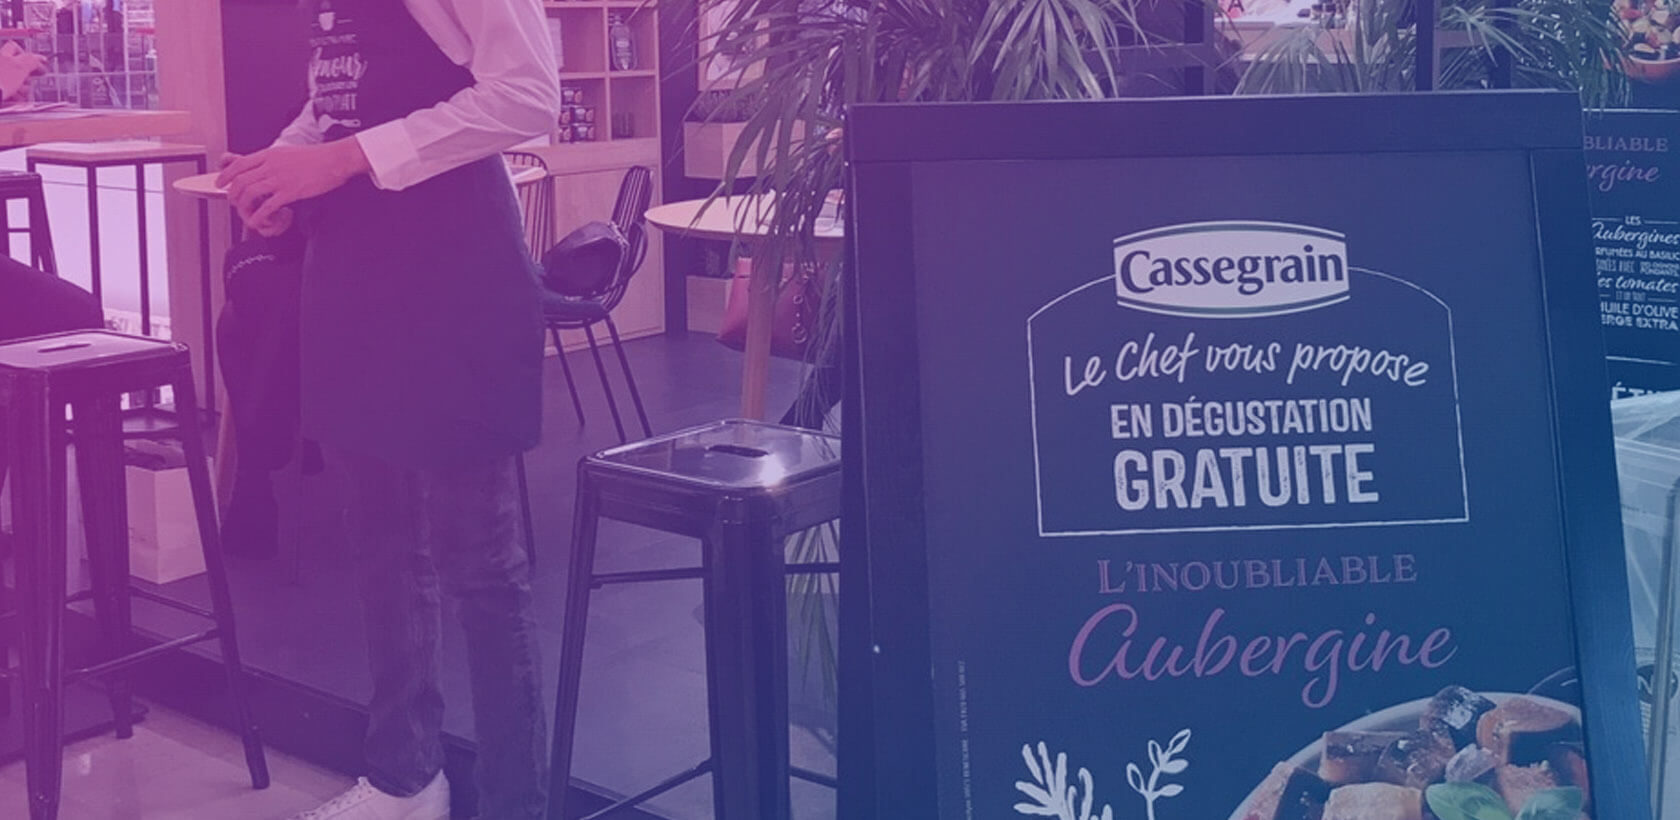 Marketing Evénementiel Cassegrain - Agence Globe